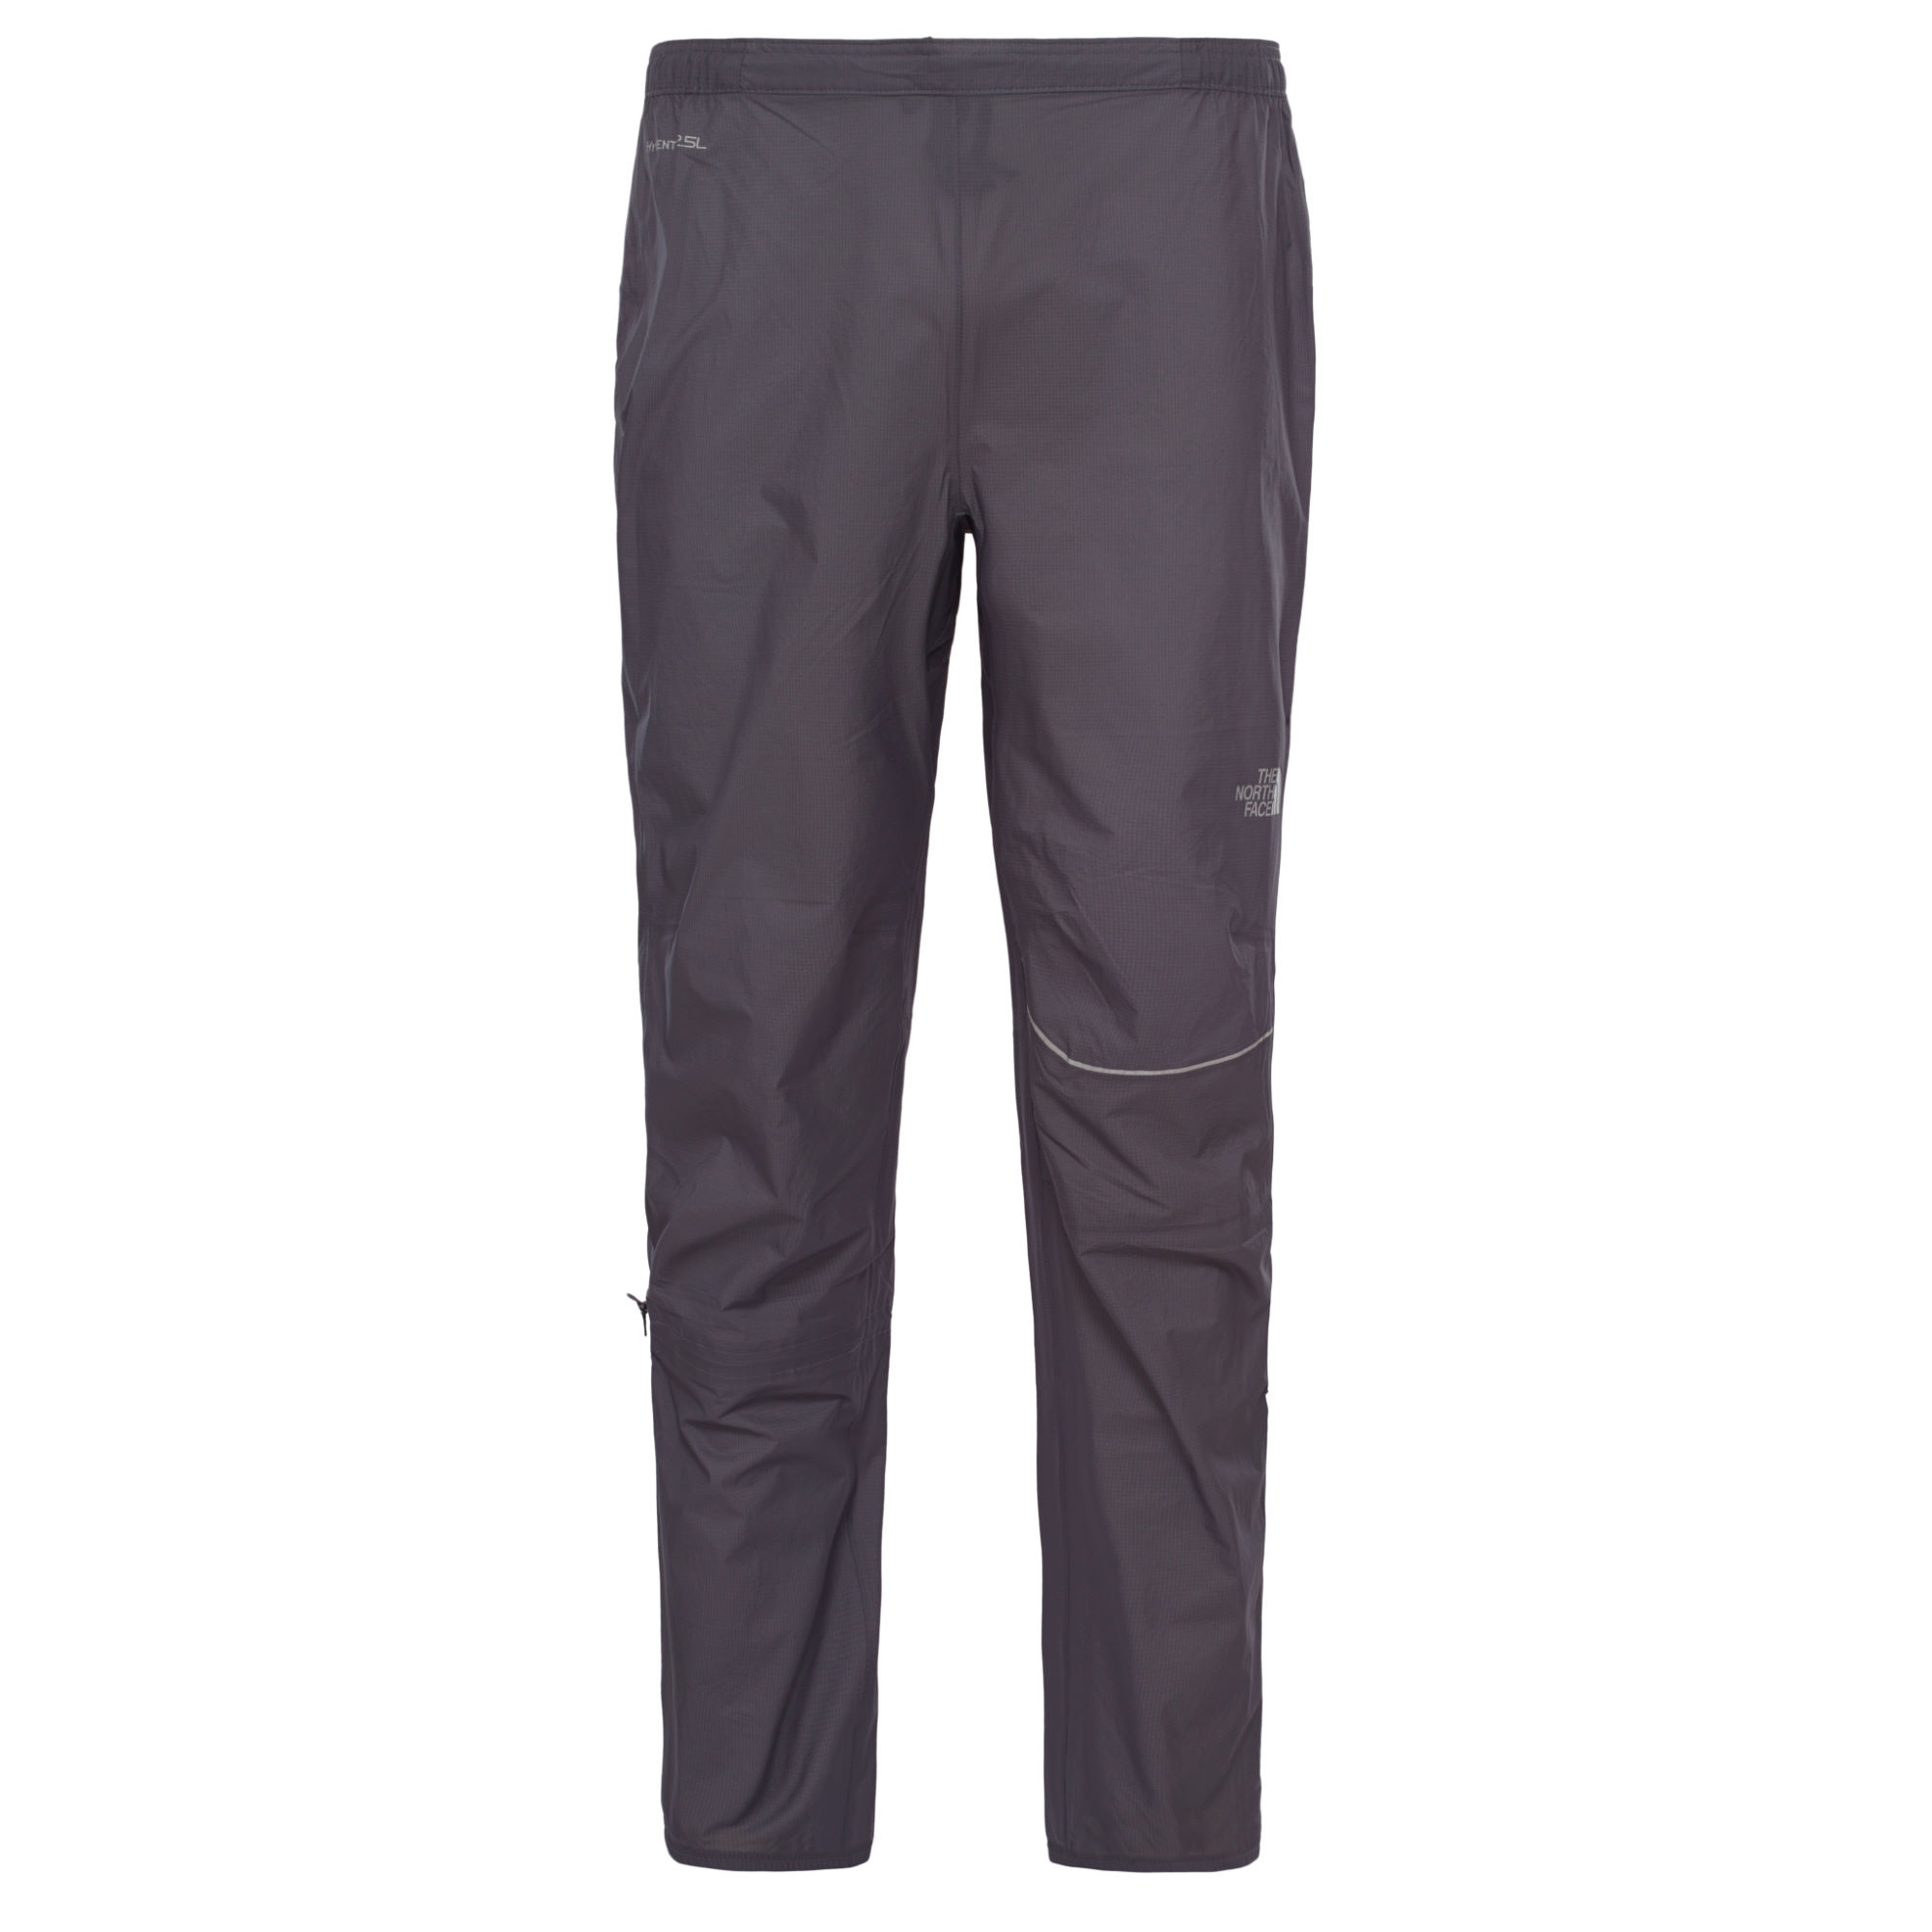 pantalons de running the north face storm stow pant aw15 wiggle france. Black Bedroom Furniture Sets. Home Design Ideas